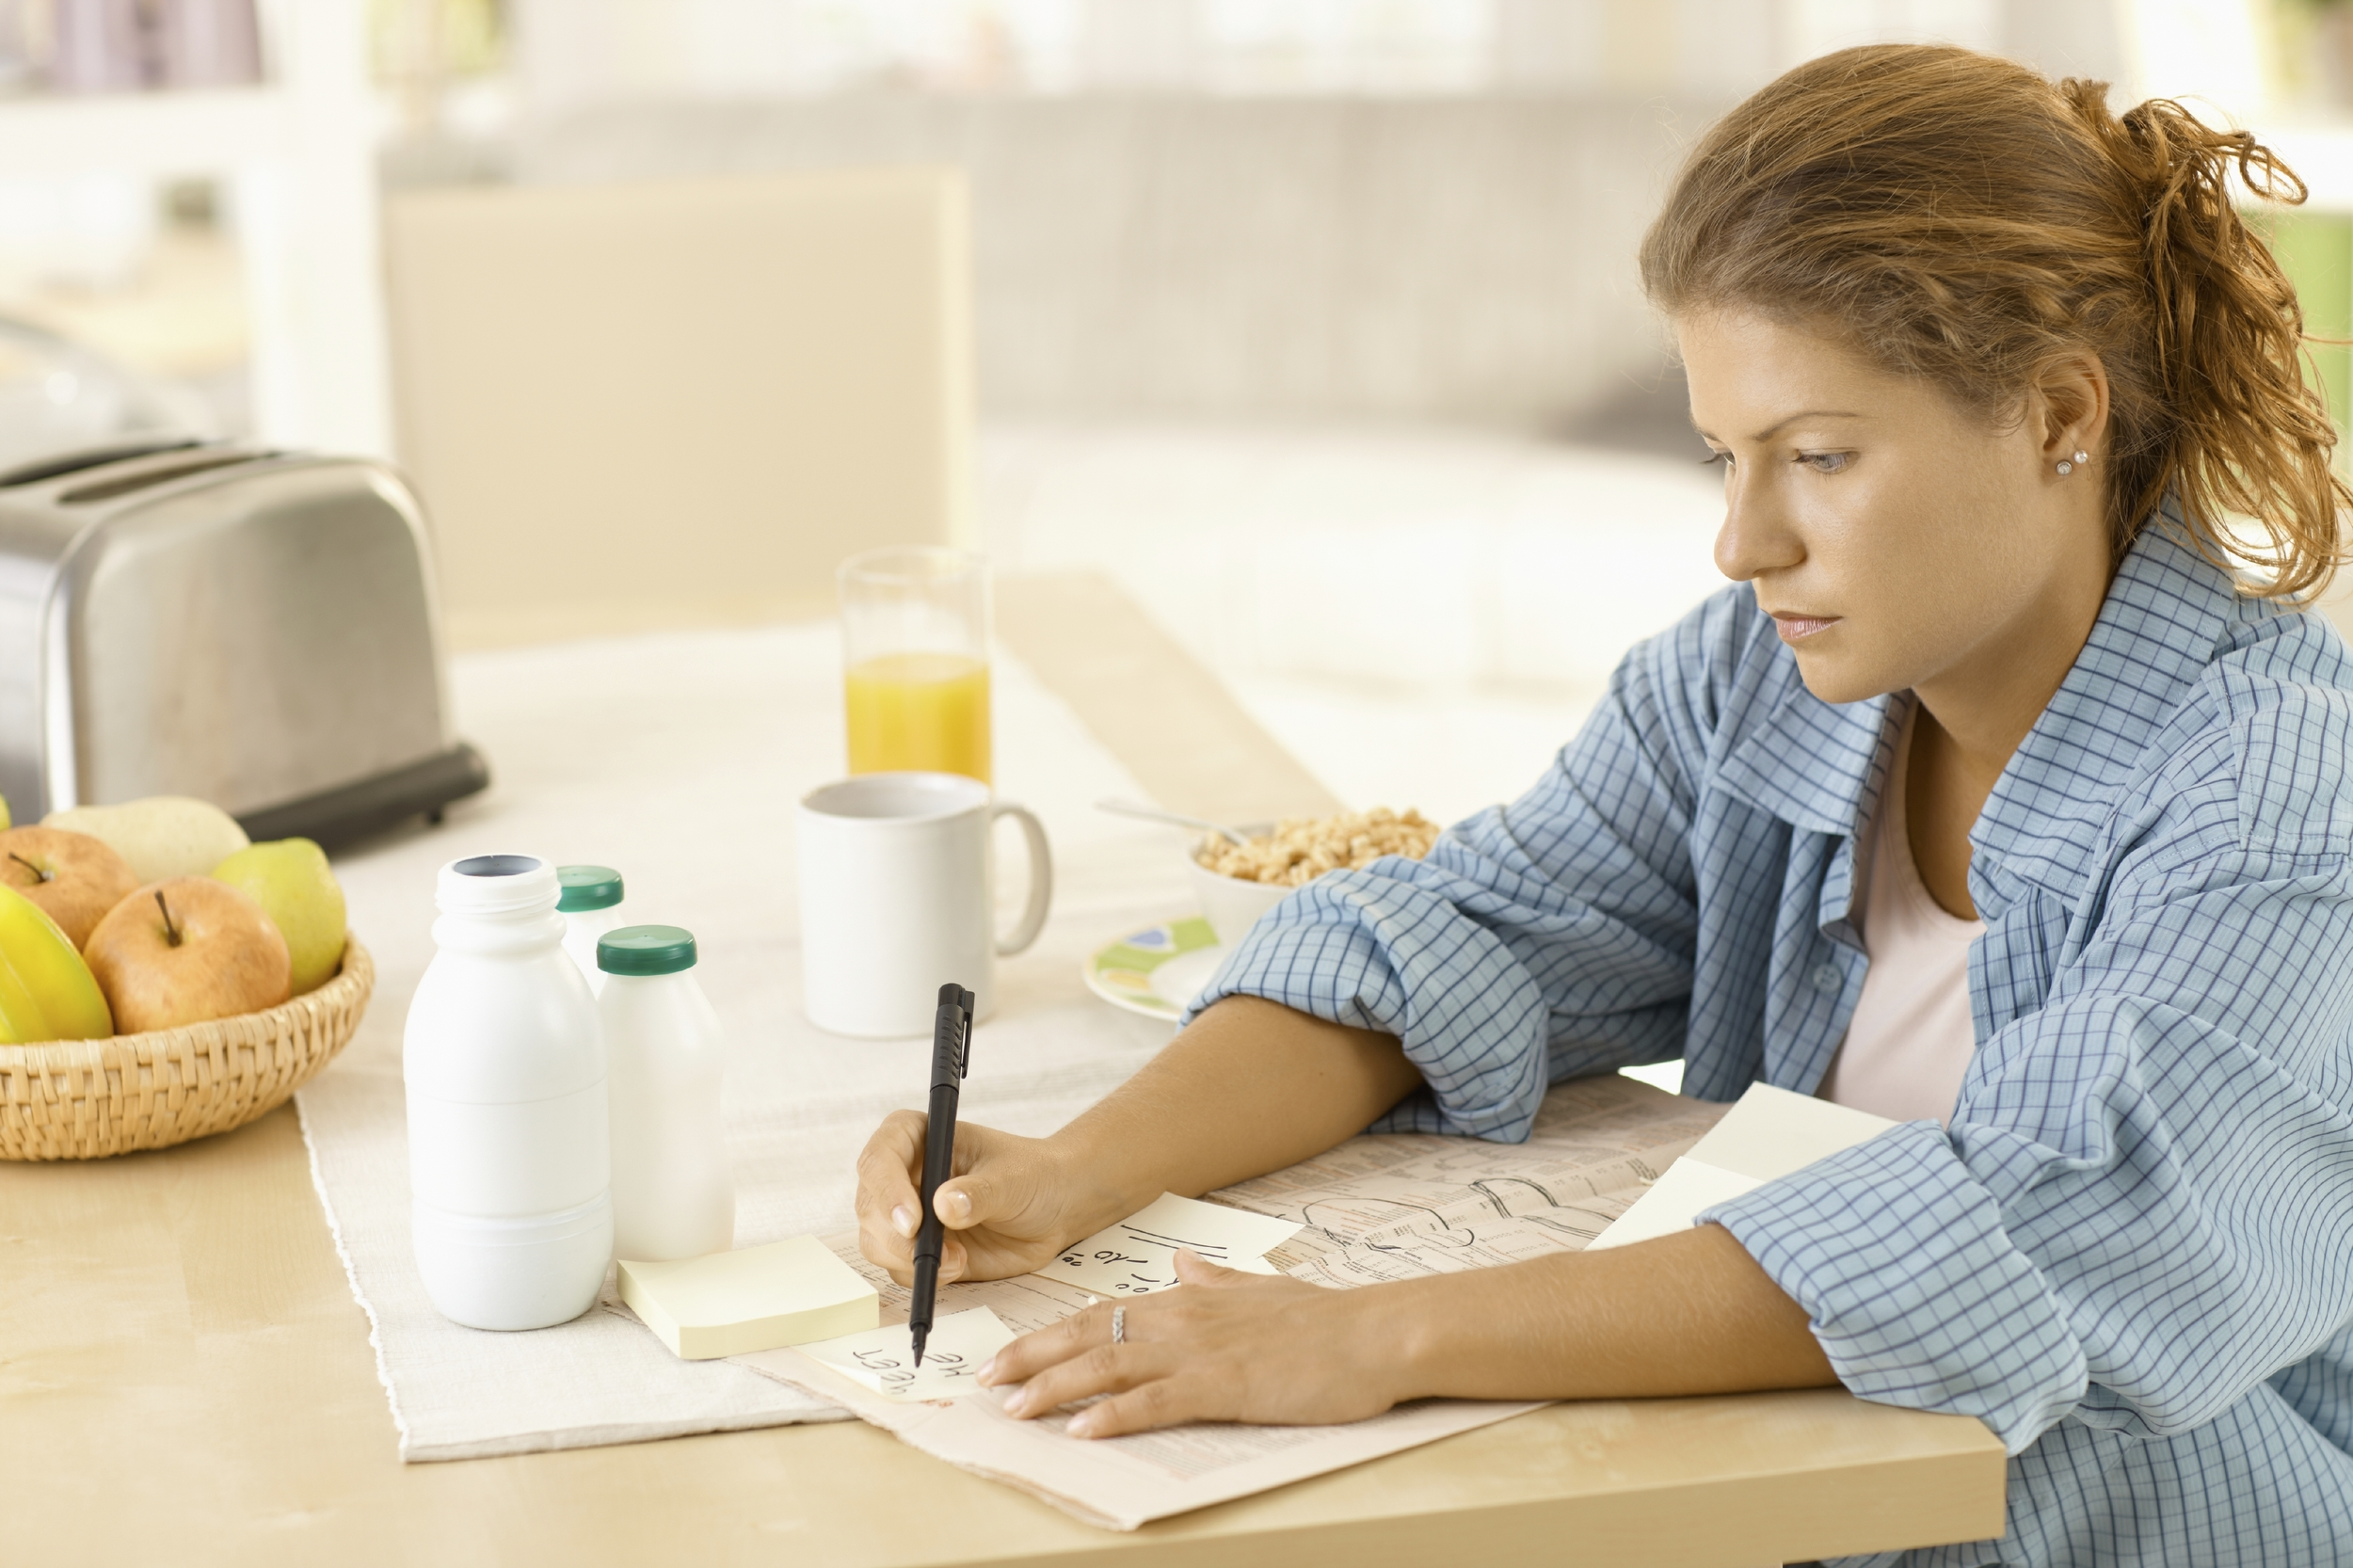 stock-photo-14658398-young-woman-writing-notes-in-kitchen.jpg